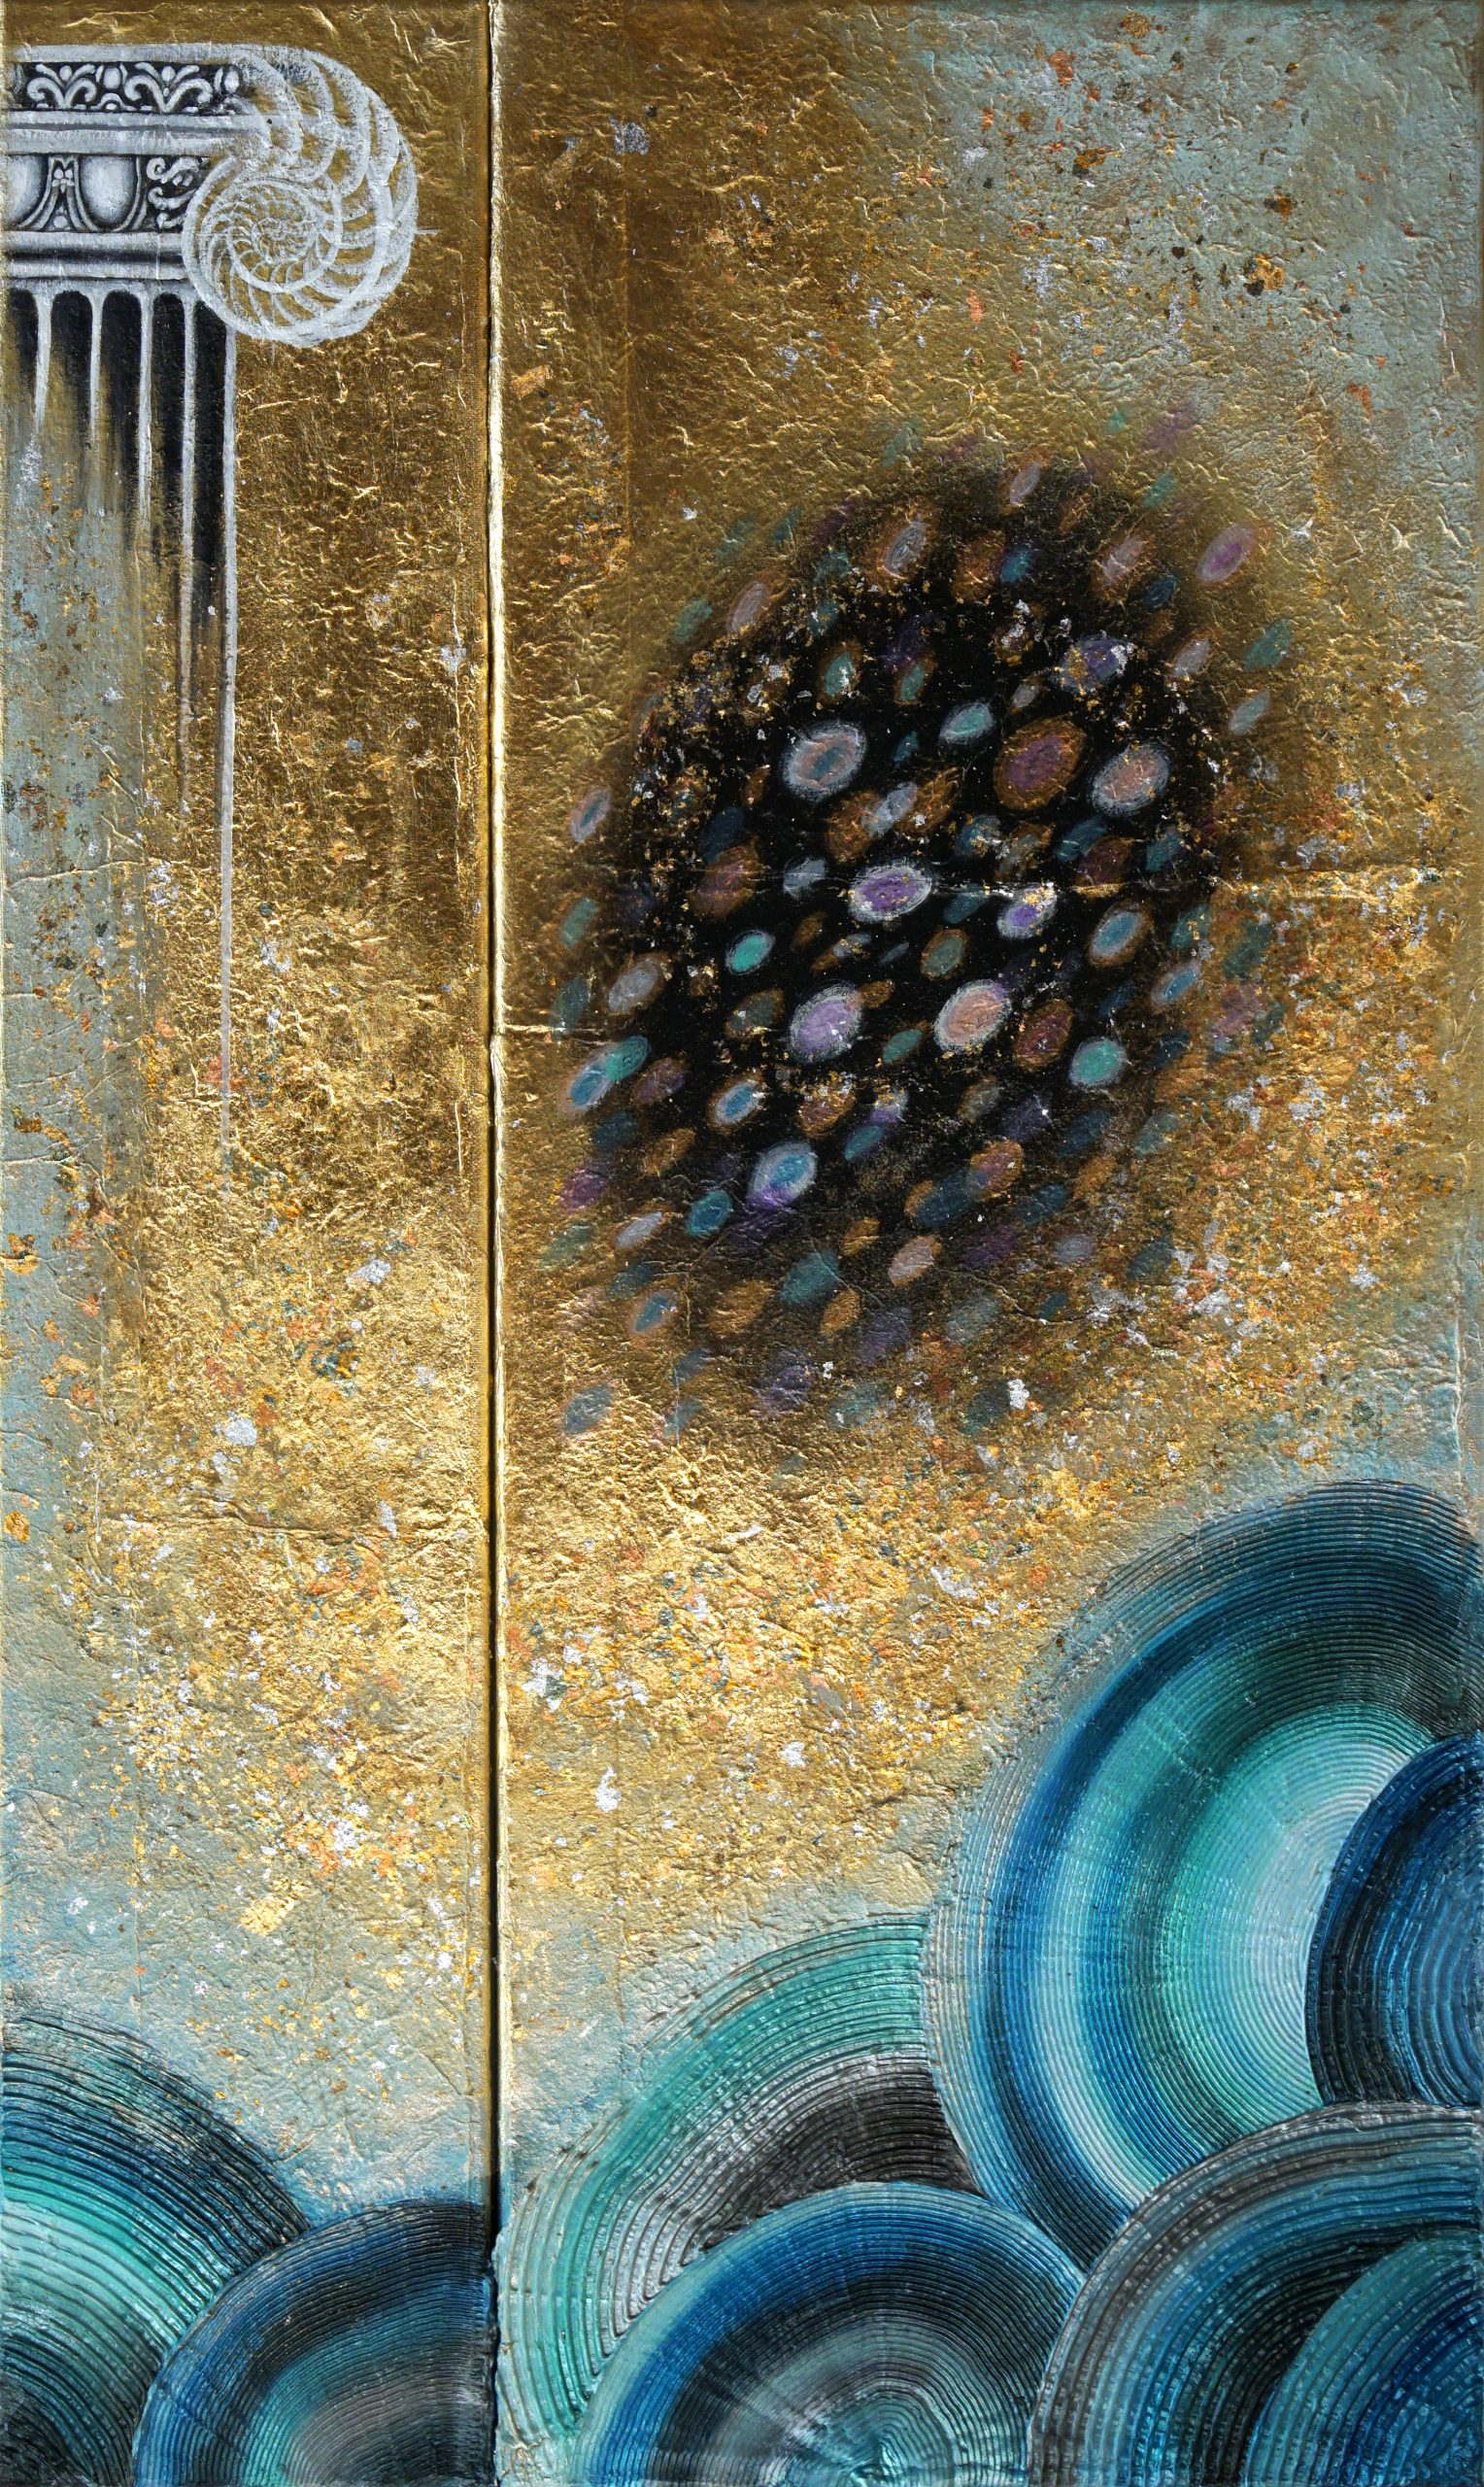 Cosmic Sea IV-(100×60)cm-mixed media on canvas